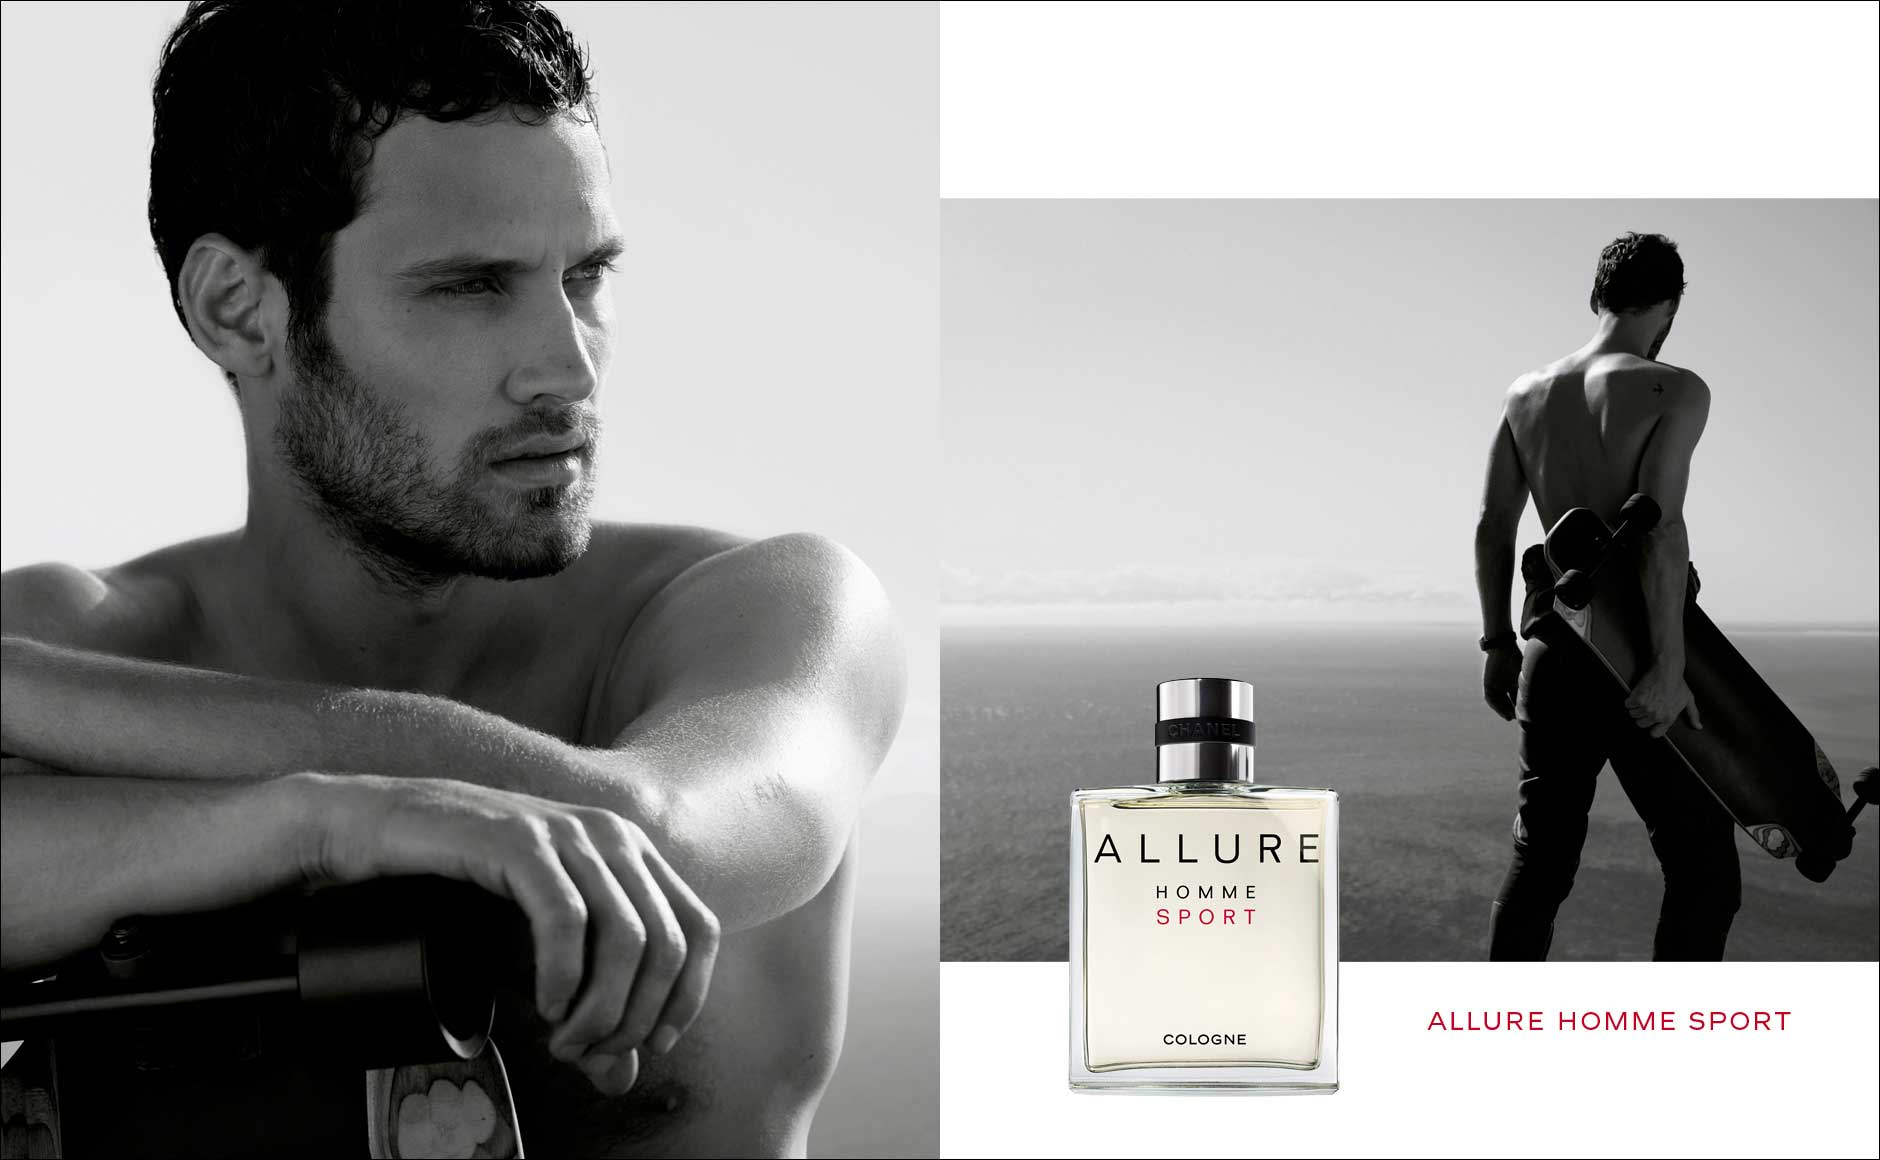 Allure Homme Sport Colonge